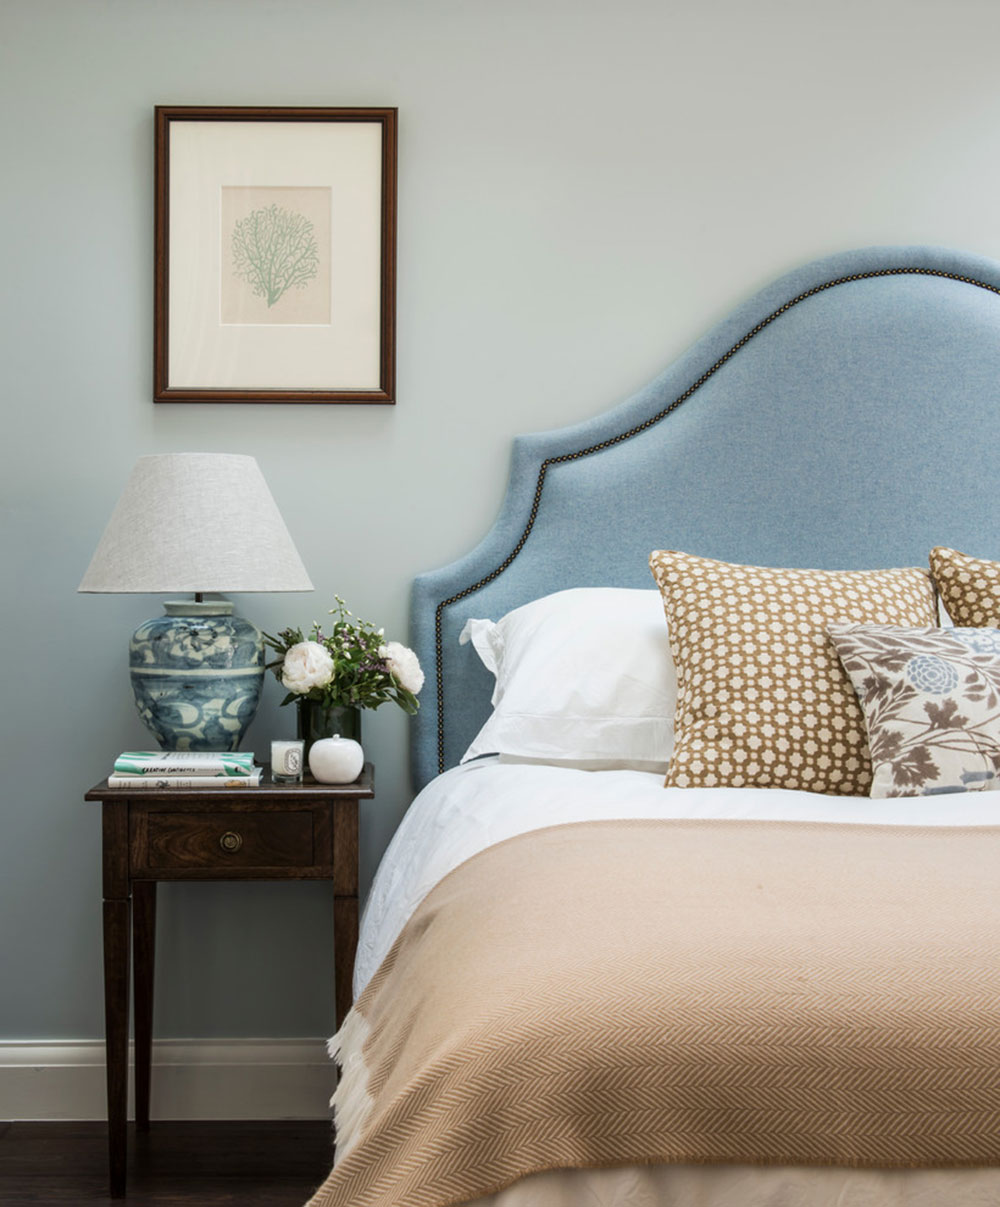 Cool Bedside Table Ideas To Try In Your Bedroom